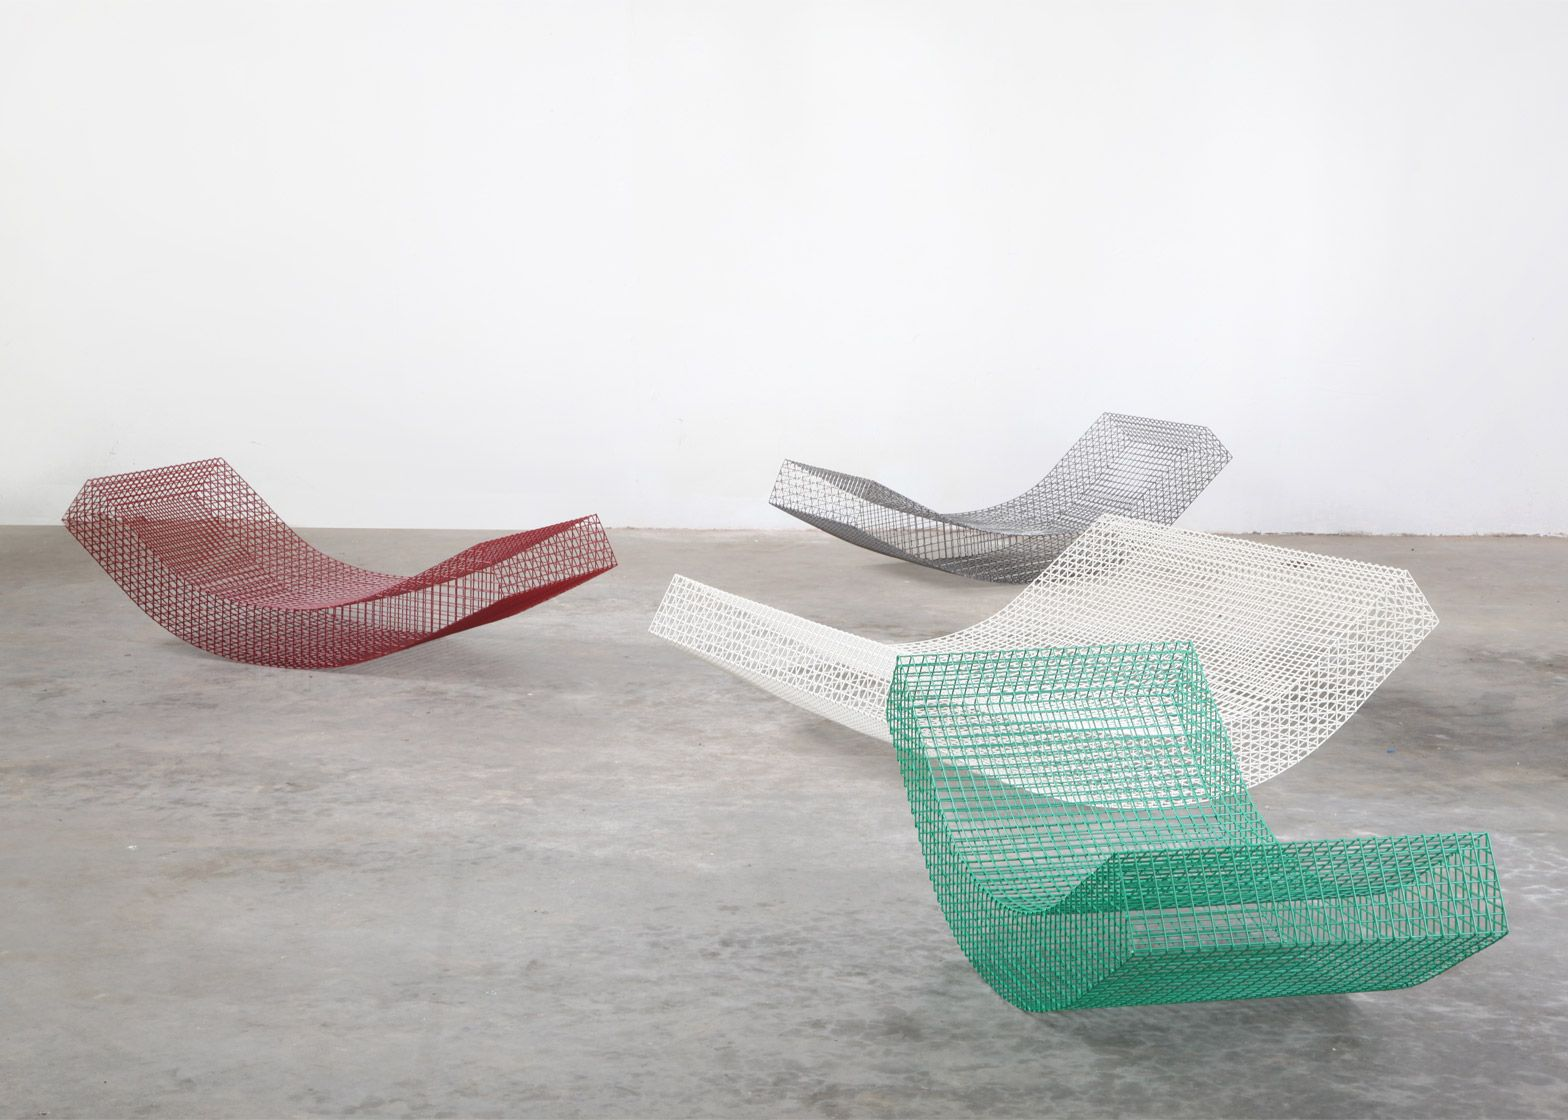 Belgian Design Studio Muller Van Severen Has Crafted Curving Loungers From Wire Netting As Part Of A Furniture Comm Daybed Design Outdoor Loungers Wire Seating